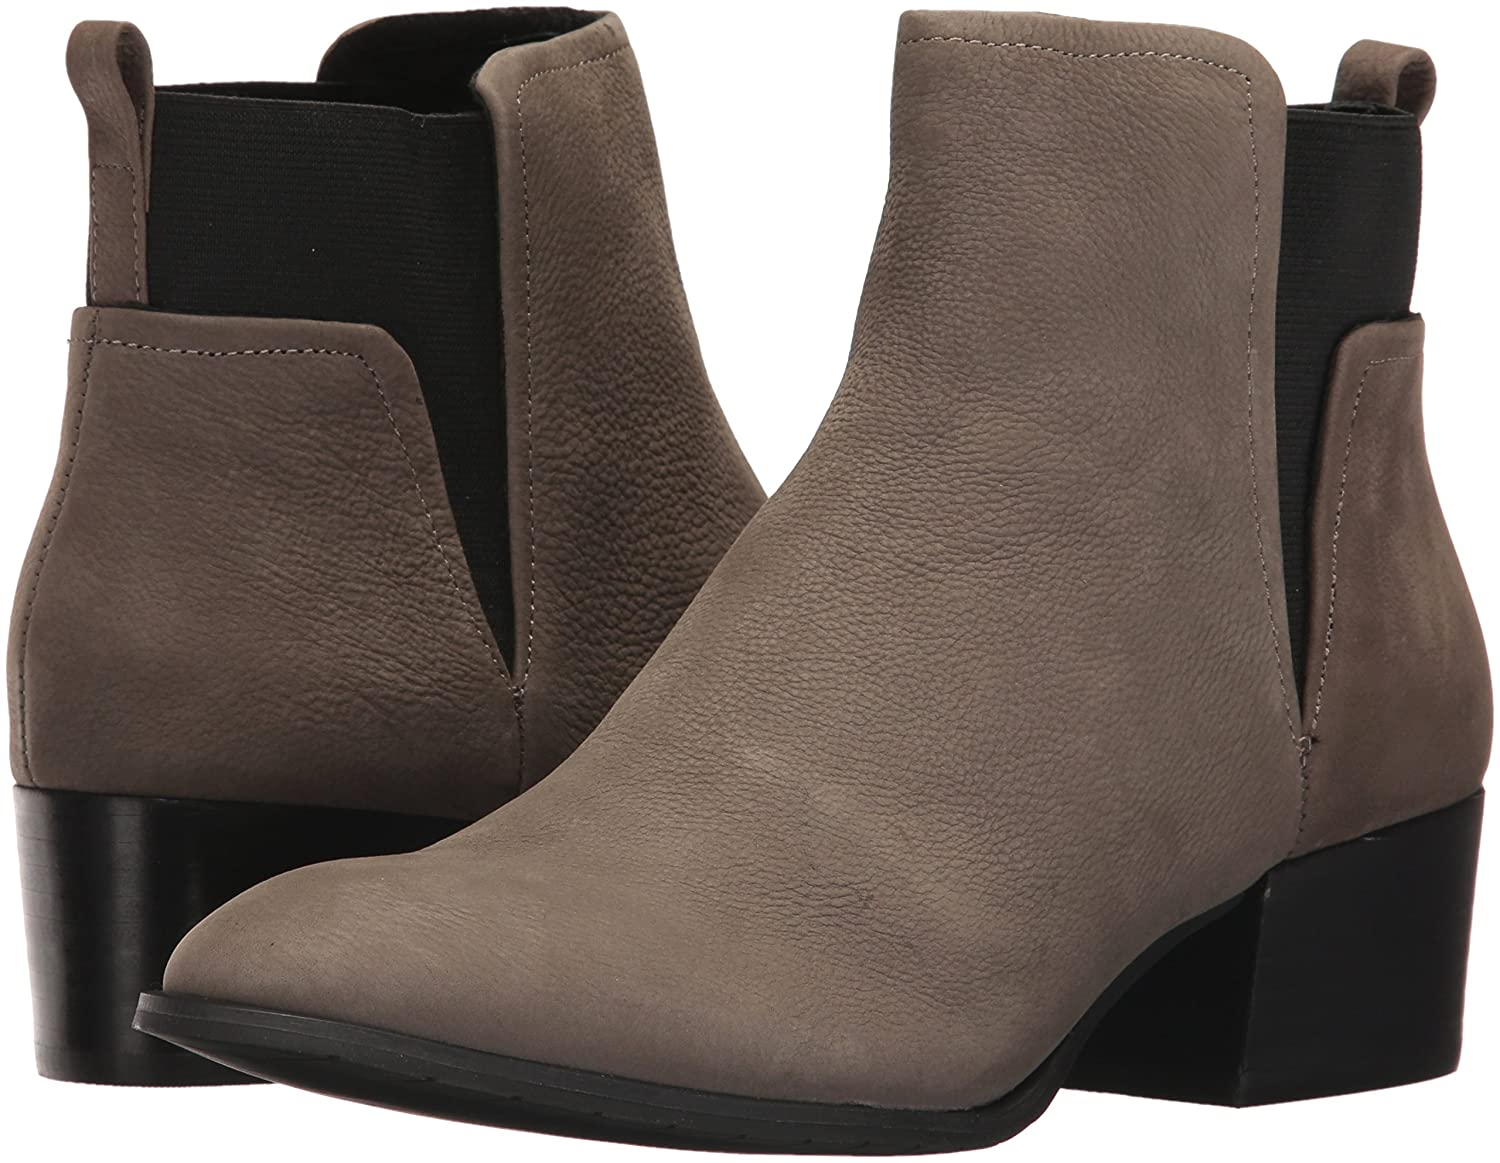 Kenneth Cole New York Women's Artie Pull Low Heel Nubuck Ankle Bootie B06ZYBMJCH 6 B(M) US|Cement